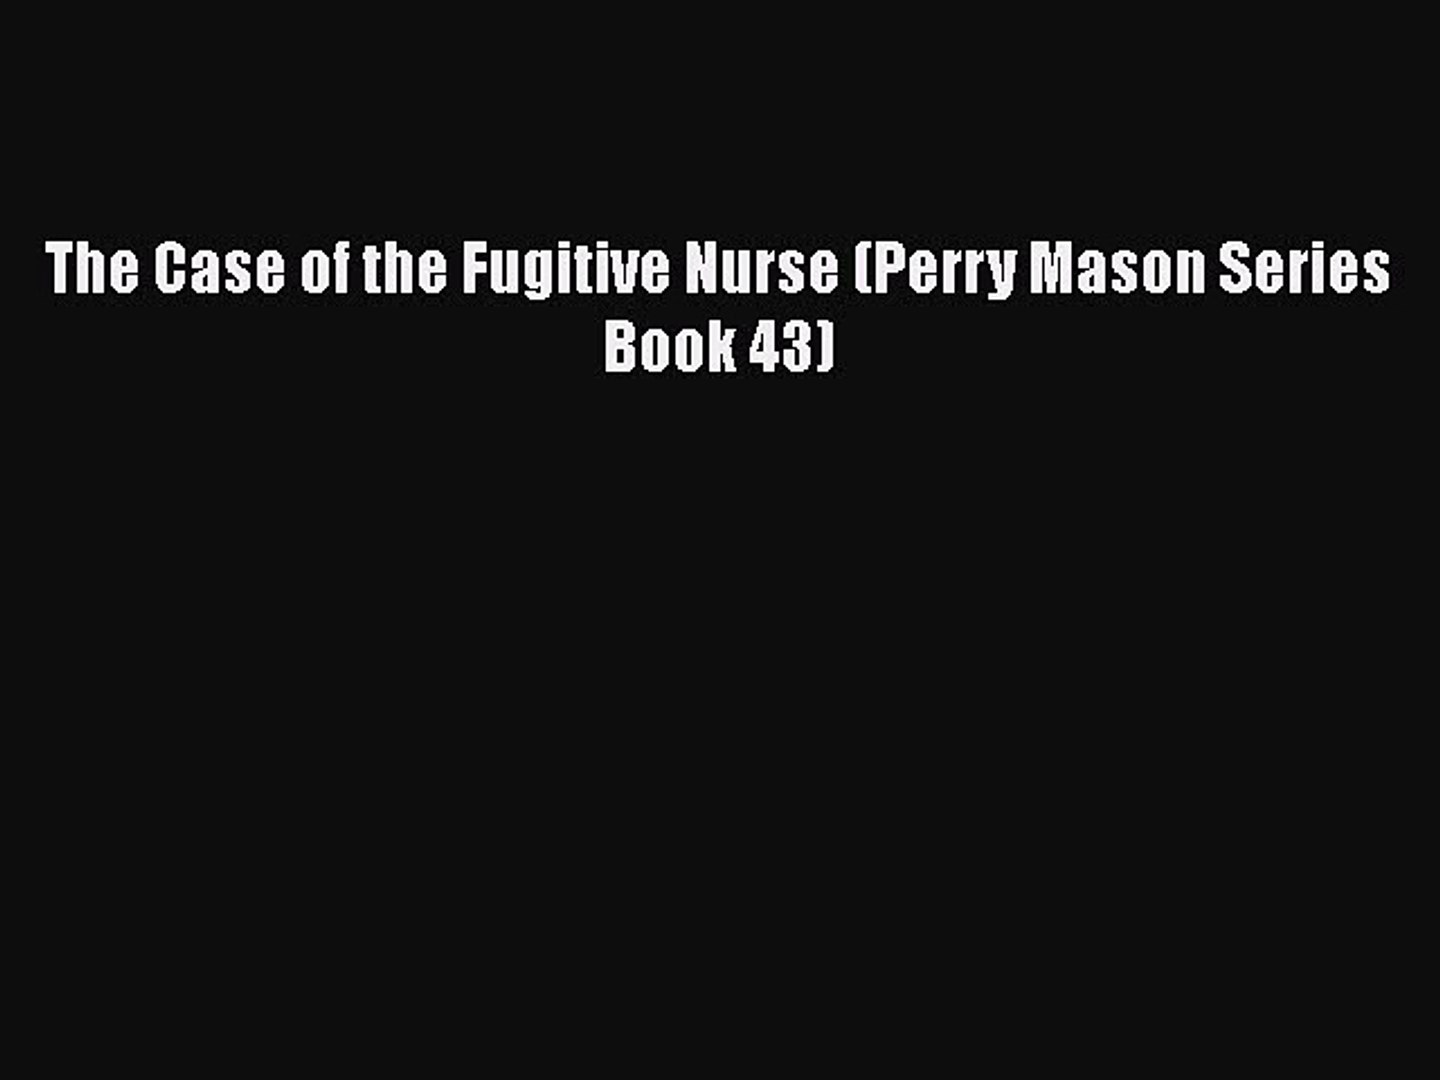 Read The Case of the Fugitive Nurse (Perry Mason Series Book 43) Ebook Online